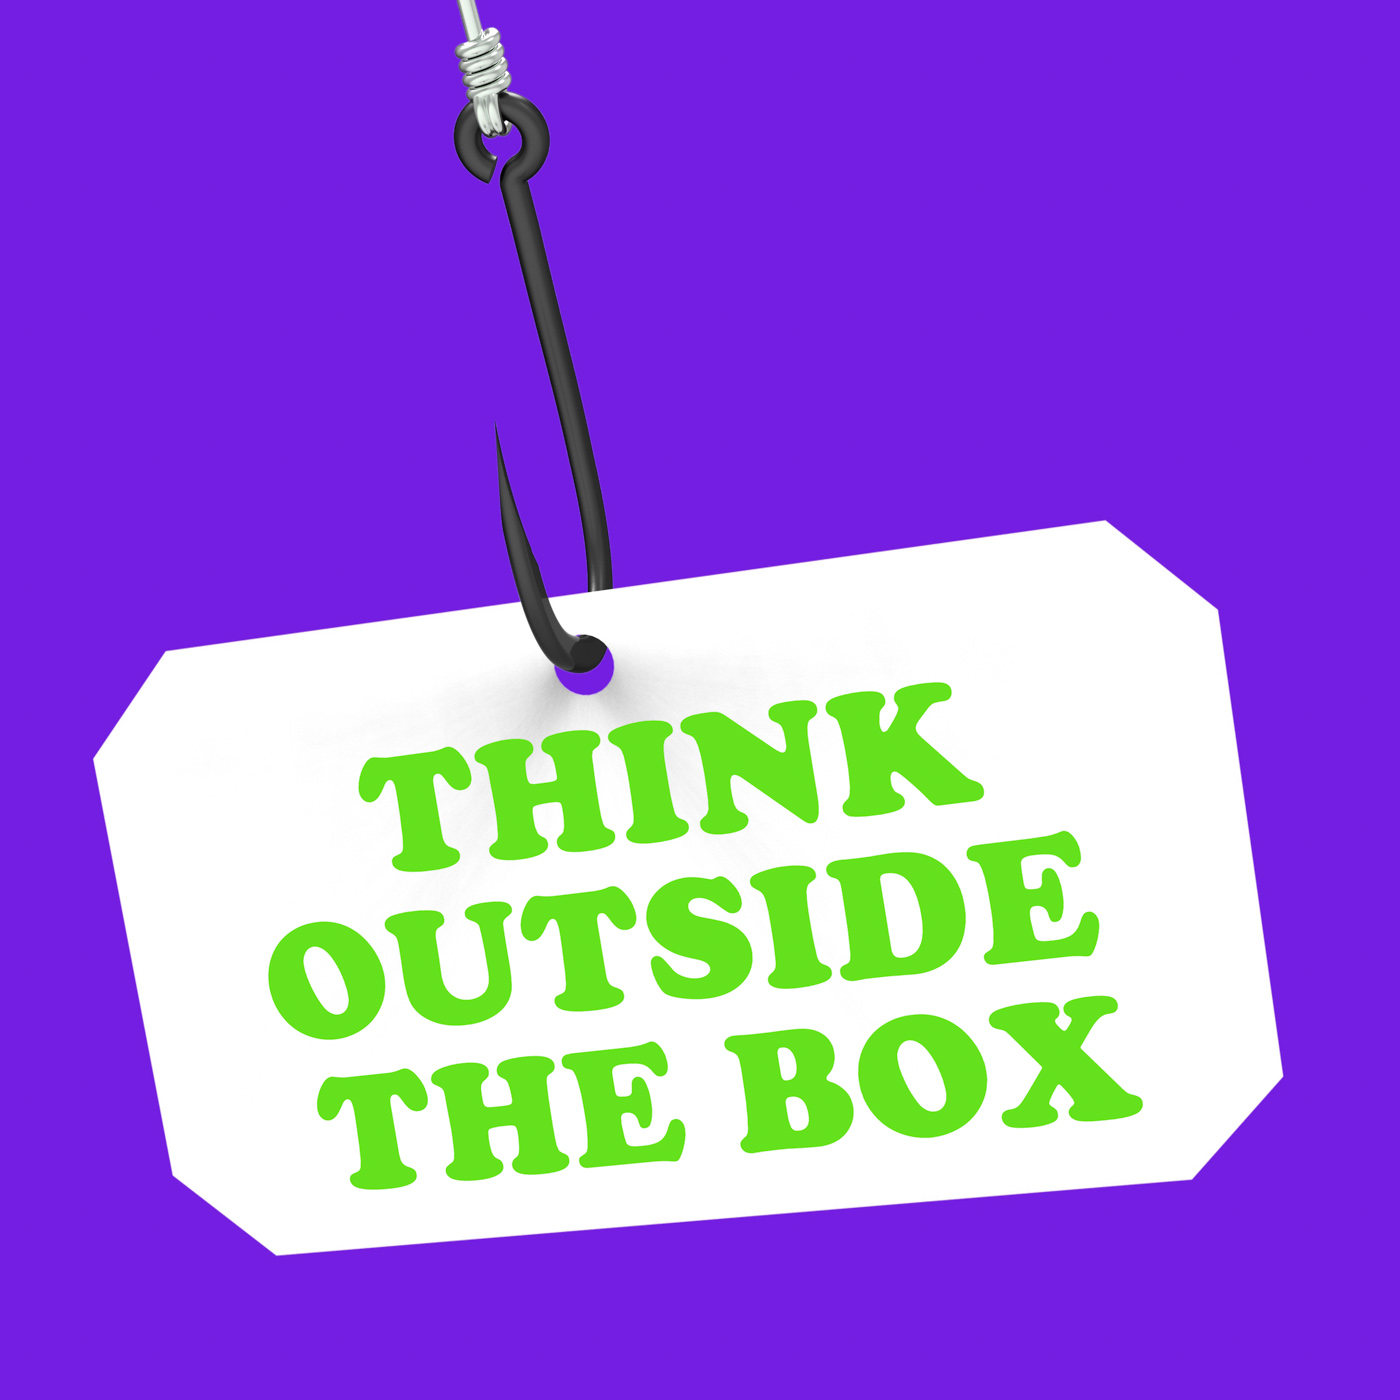 Think outside the box on hook shows imagination and creativity photo